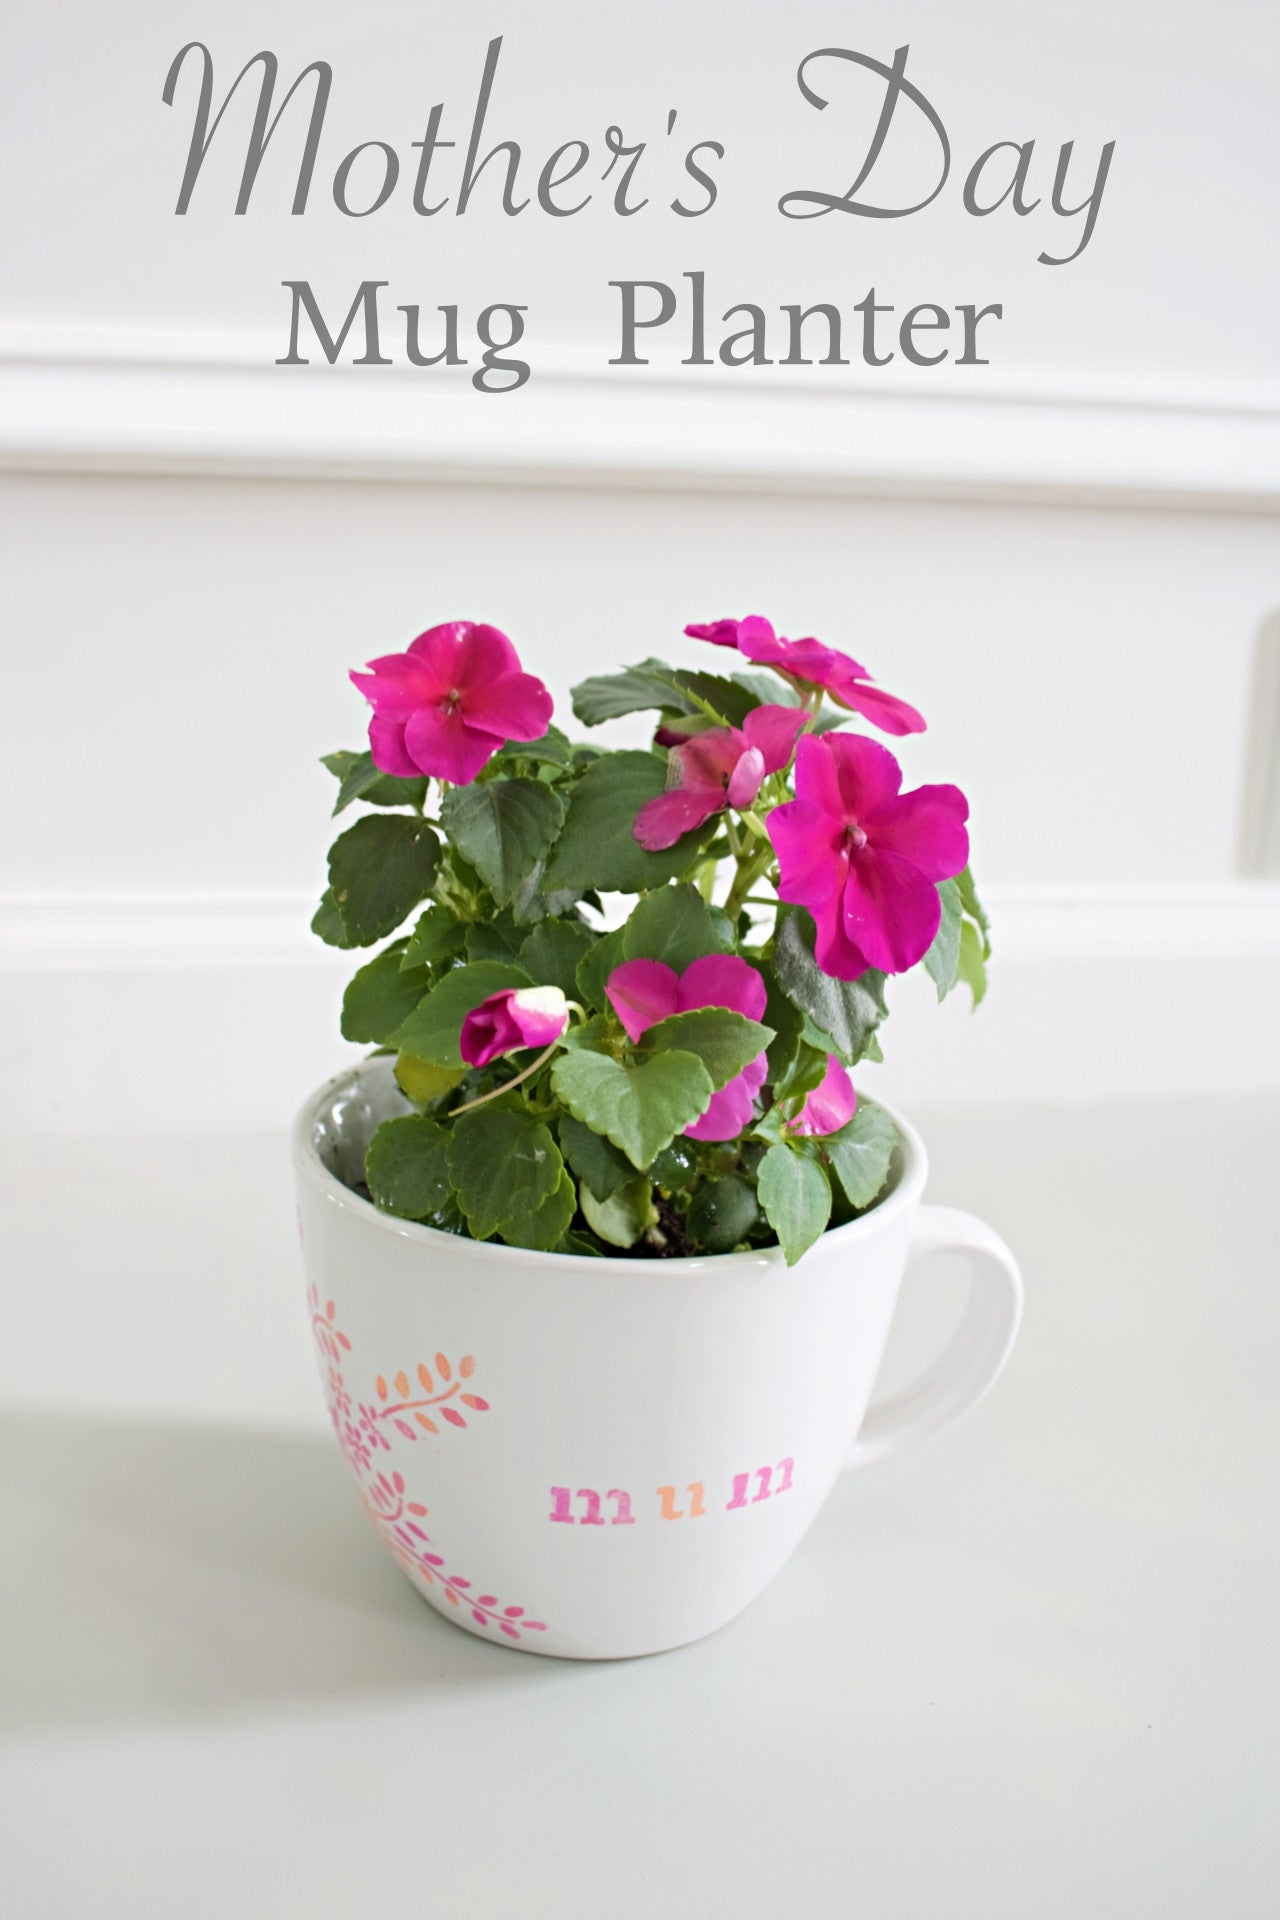 Mother's Day Mug Planter